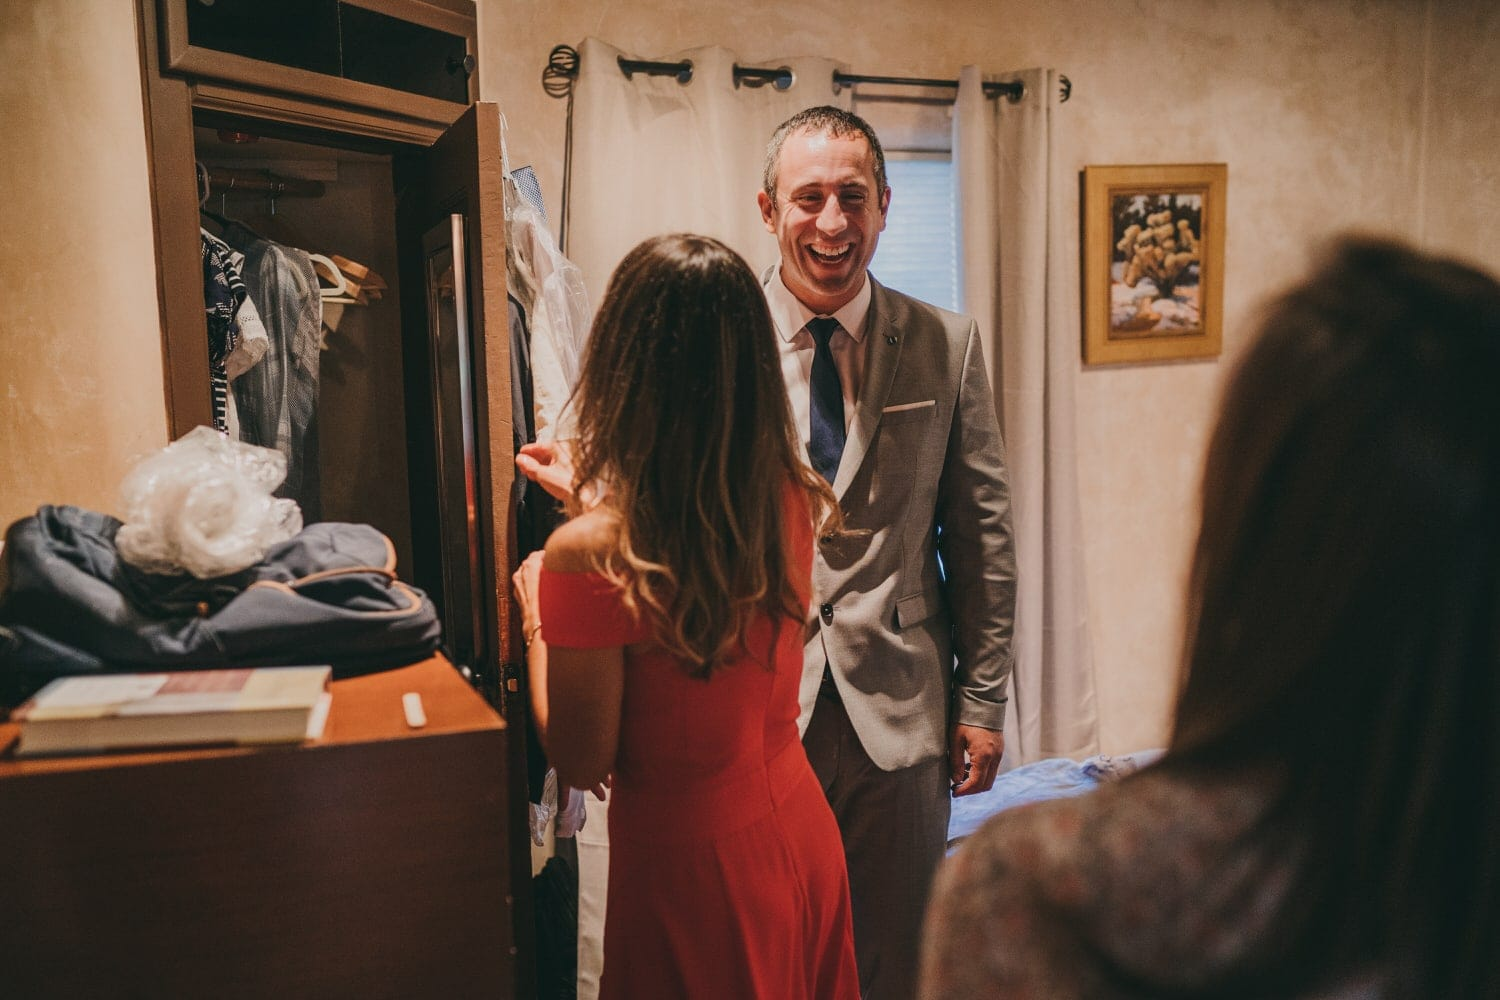 Groom laughing with his sisters as they see him for the first time in his wedding suit.